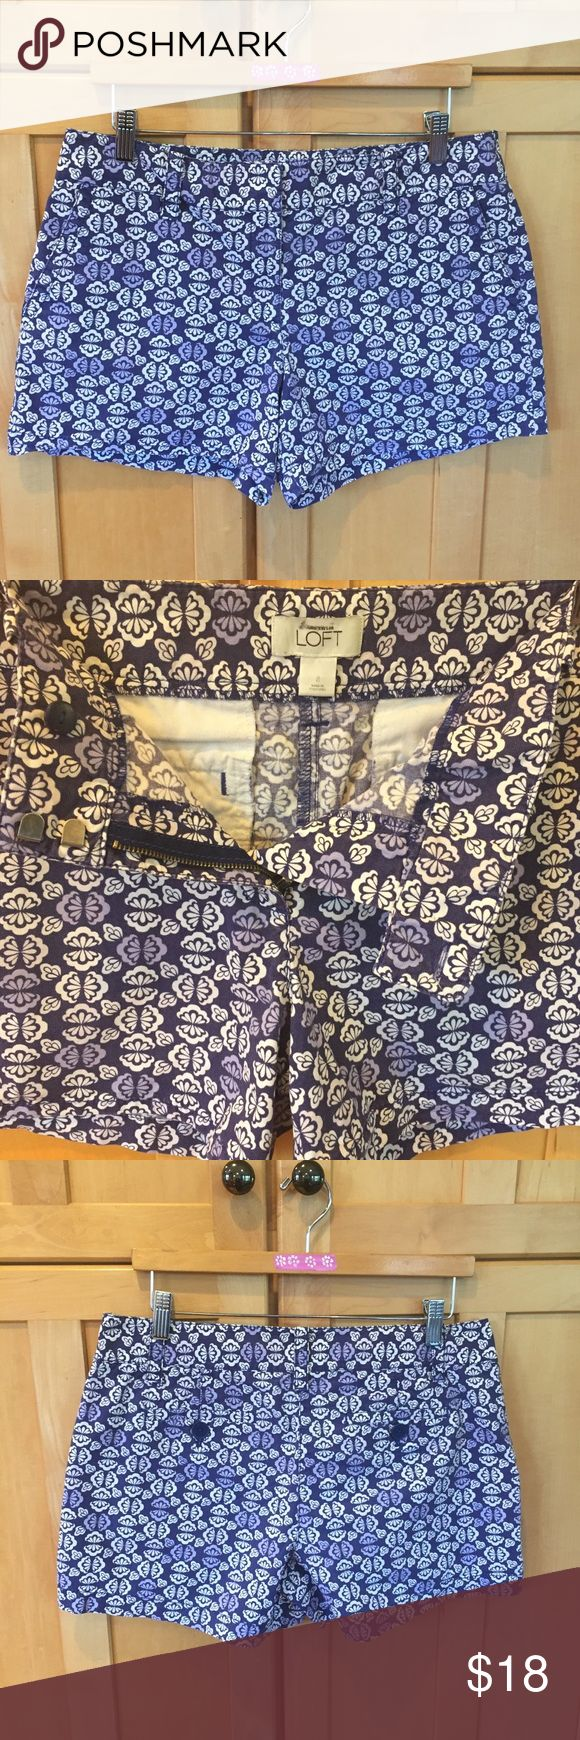 Anne Taylor LOFT with pretty blue design SHORTS Anne Taylor LOFT size 8 SHORTS. Pretty blue print design with zip front and double clasp closure, belt loops, front pockets and back with button on each pocket. 97% cotton and 3% spandex fabric for a great feel and fit. Great condition-great pair of shorts! LOFT Shorts